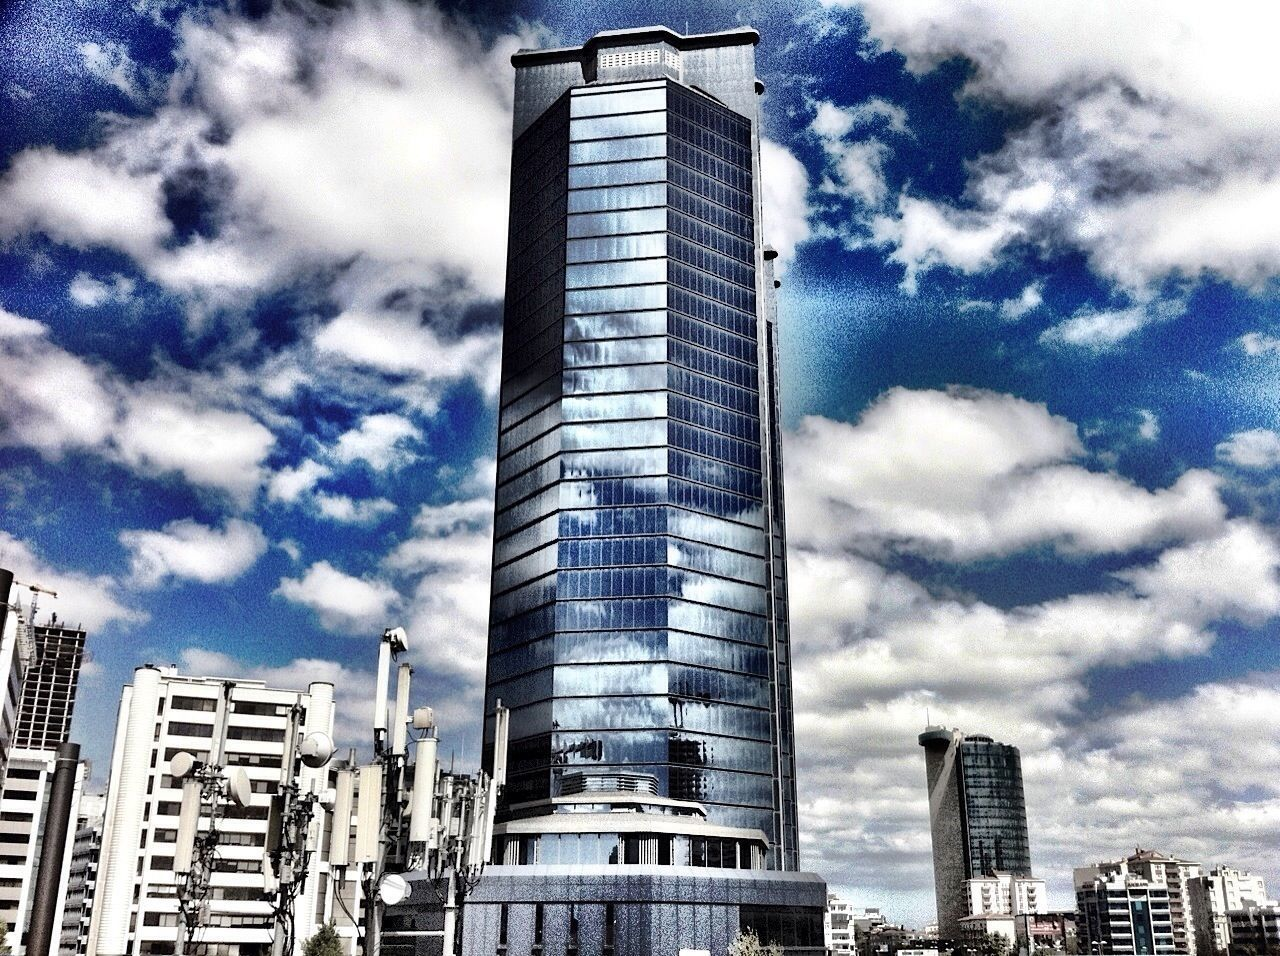 architecture, building exterior, skyscraper, built structure, tall - high, city, office building, tower, modern, low angle view, sky, building story, urban skyline, cloud, cityscape, tall, development, financial district, cloud - sky, outdoors, place of work, blue, growth, day, city life, capital cities, no people, downtown district